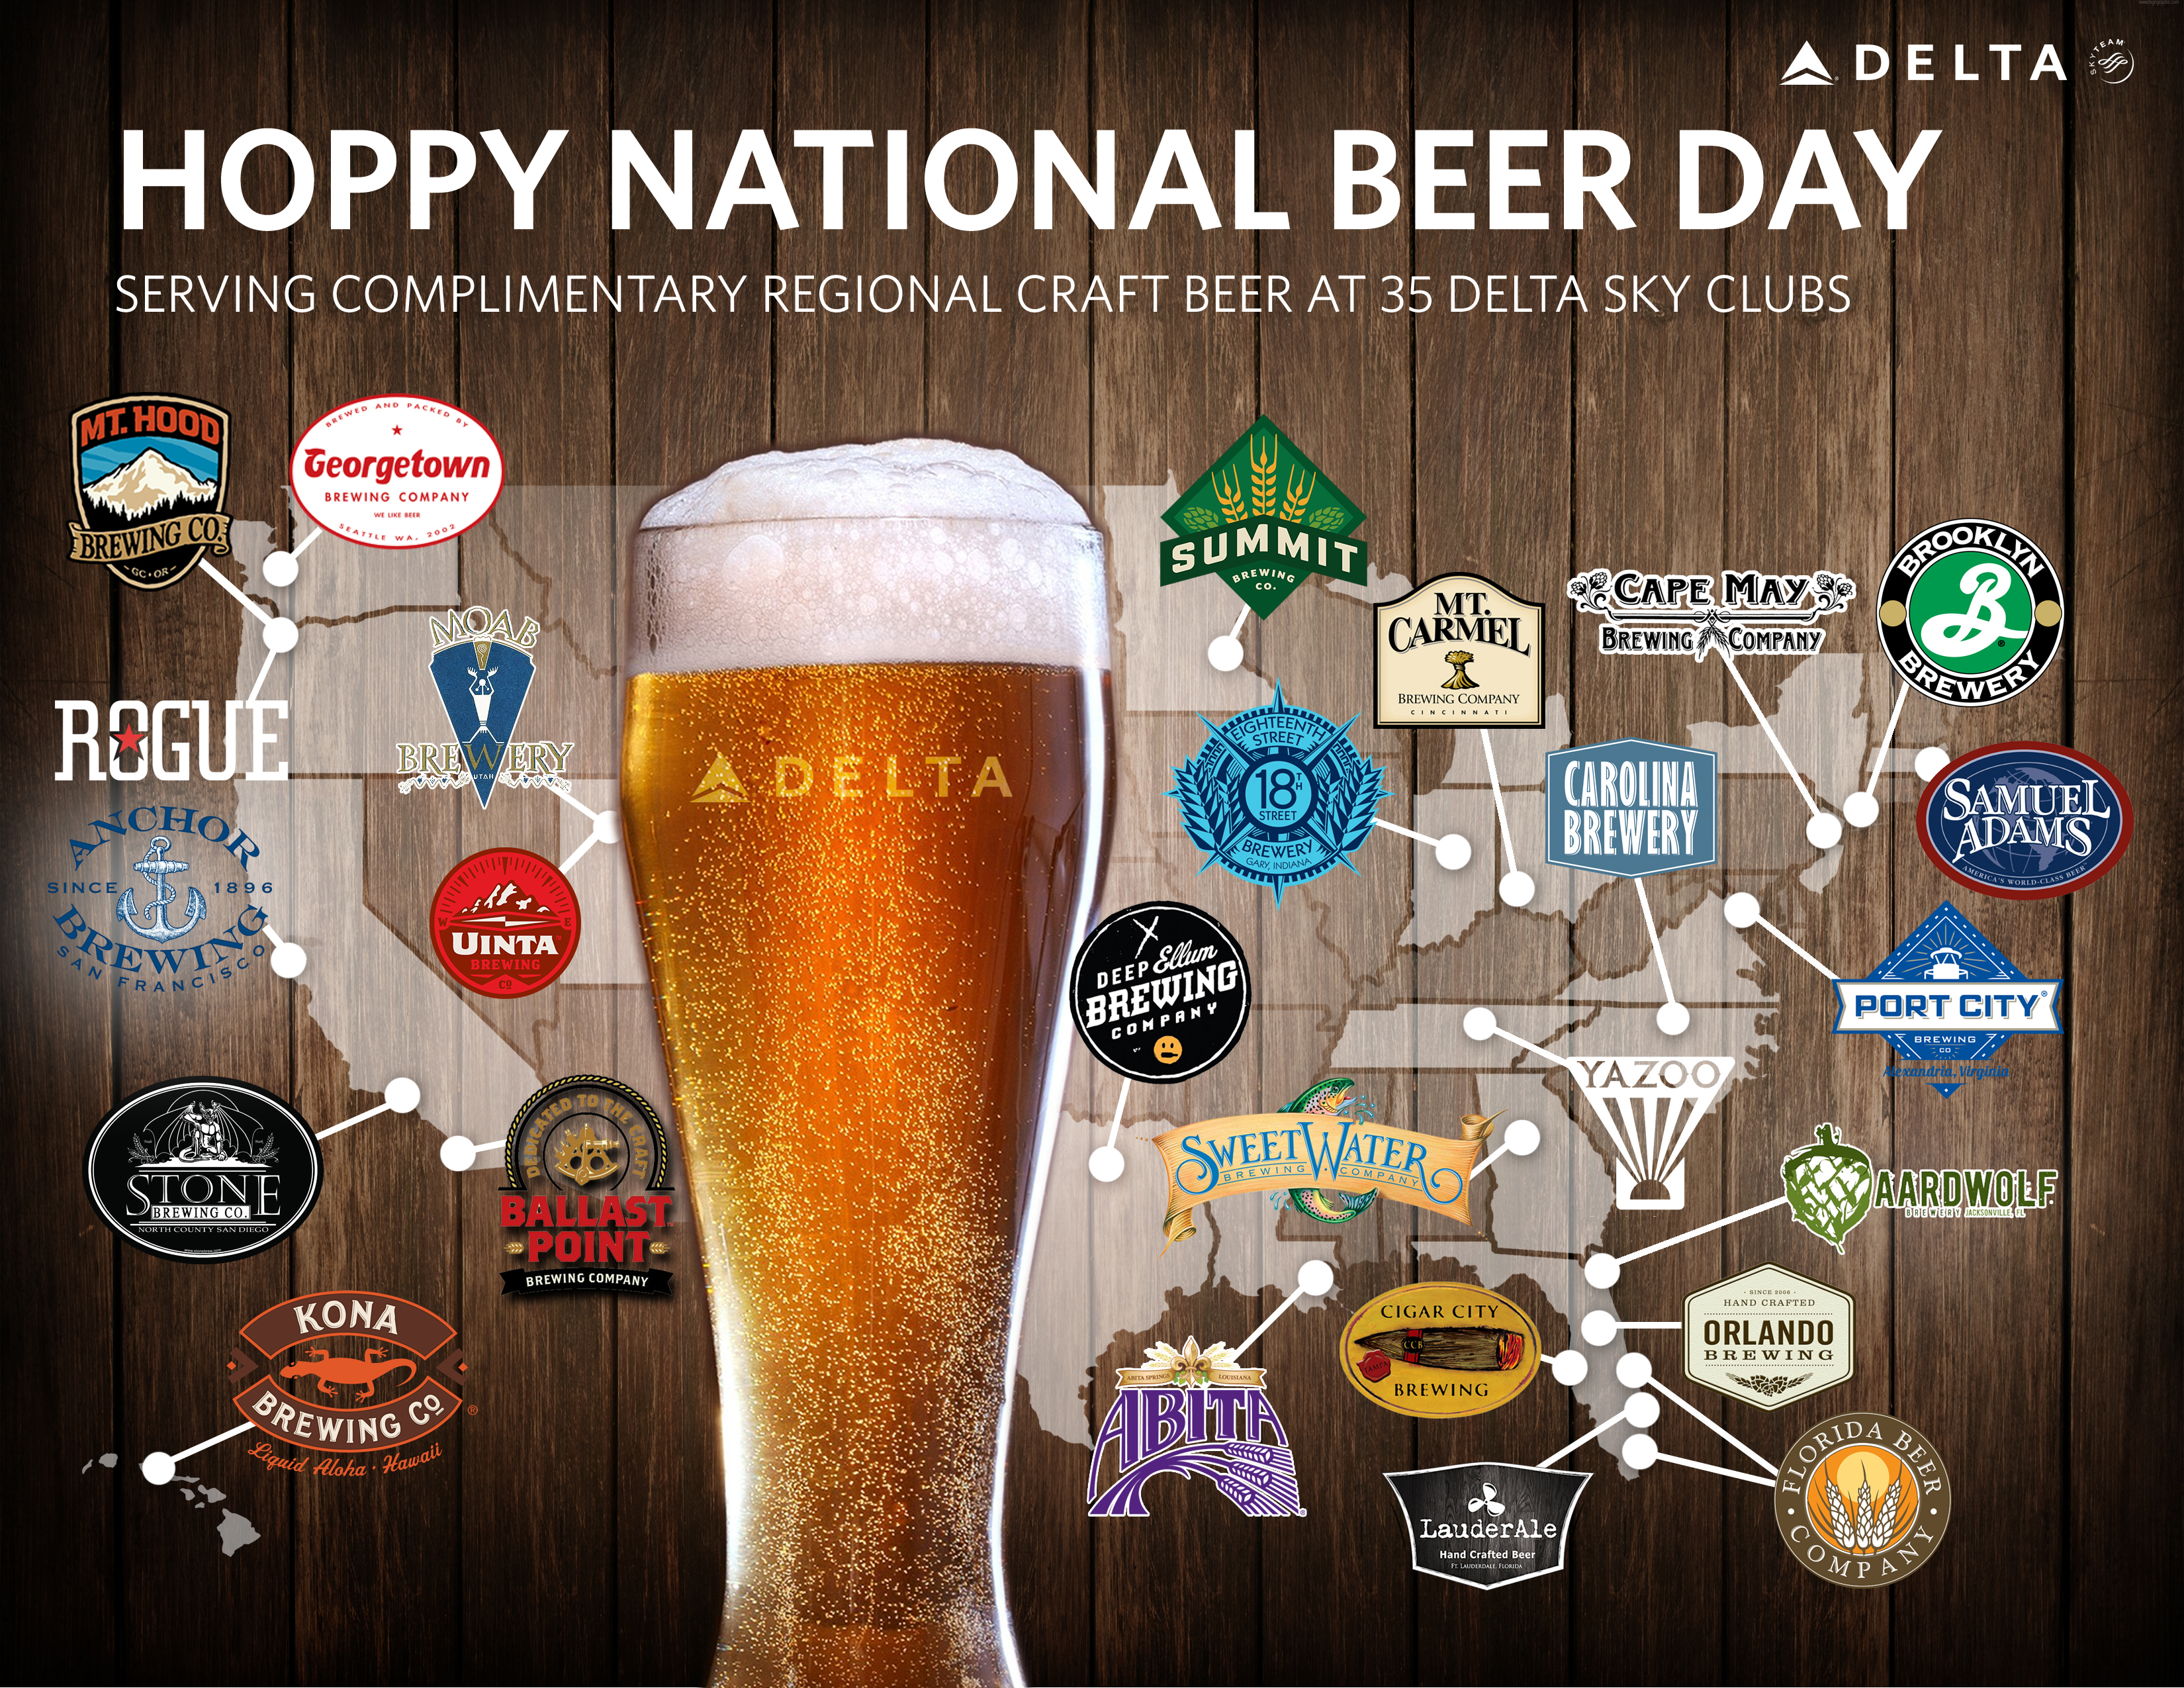 Happy National Beer Day